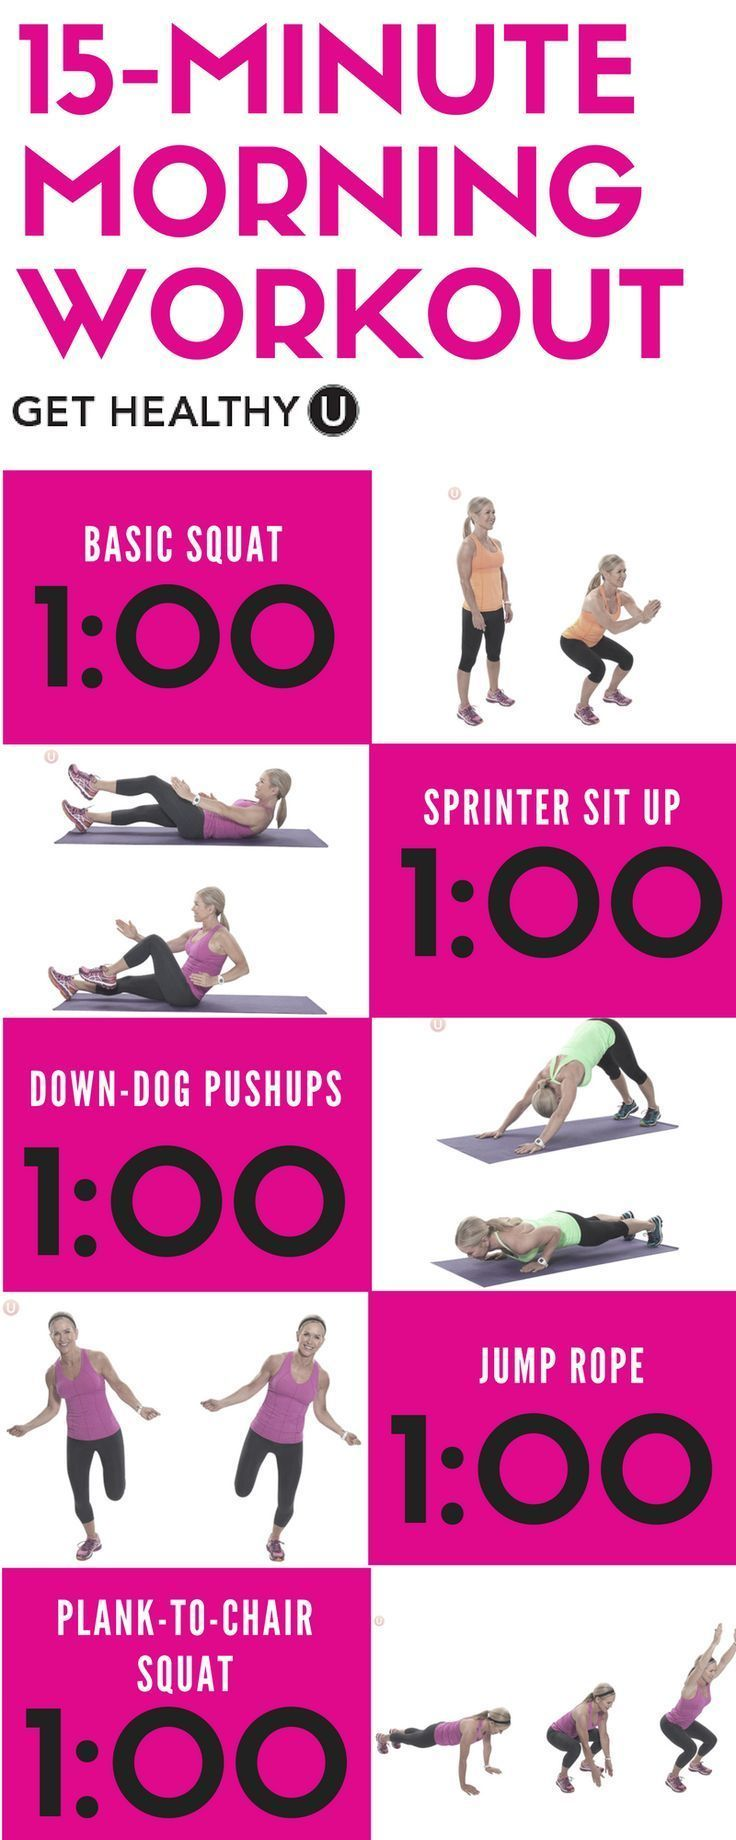 908 best Quick Workouts images on Pinterest